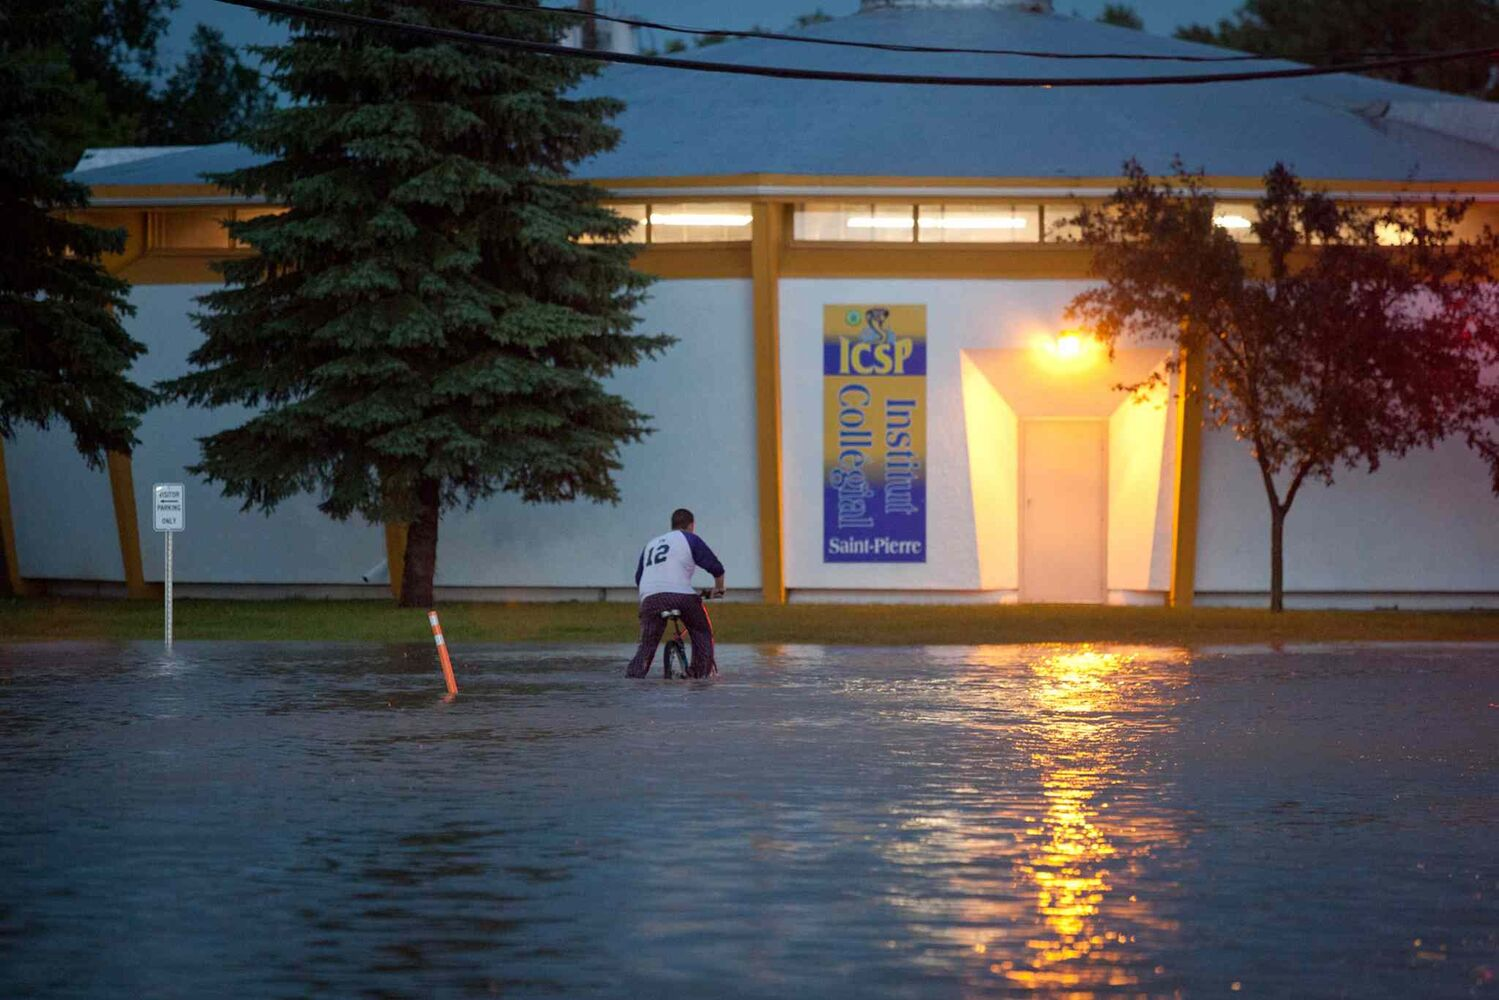 parts of St. Pierre Jolys saw flash flooding Wednesday evening after a rainstorm ripped through the area. (Christine Morin Photography)